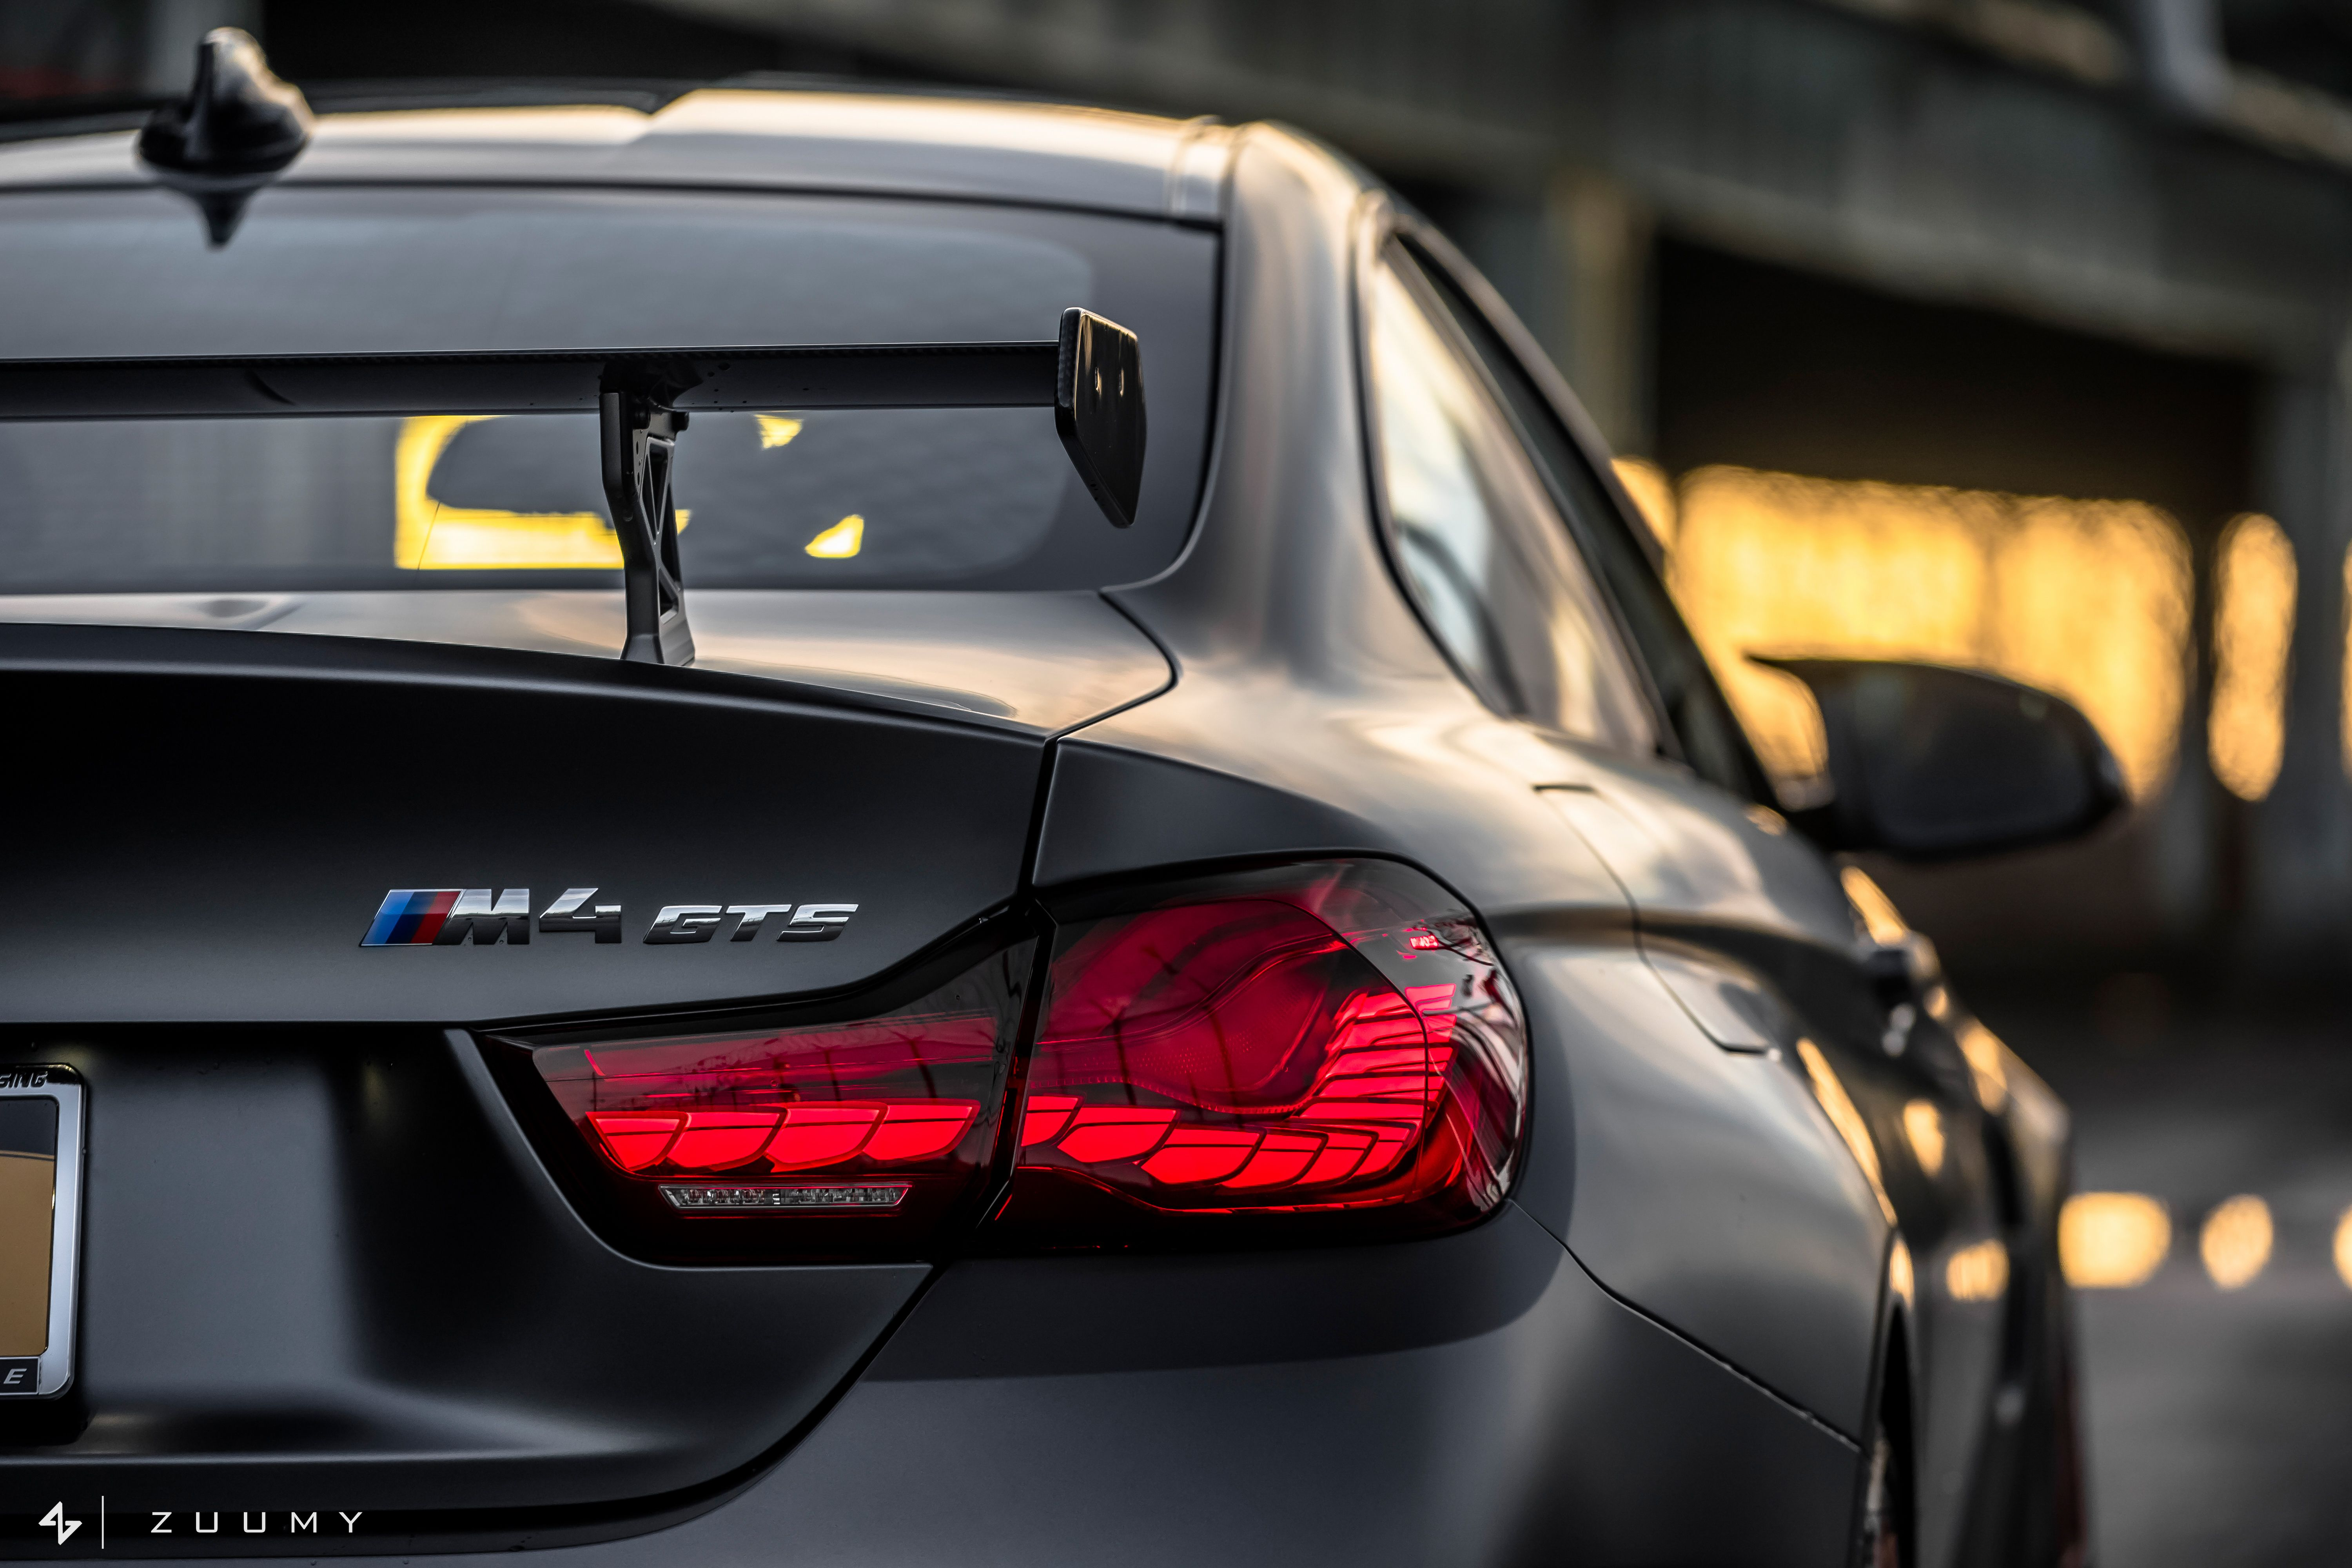 Your ridiculously awesome bmw m4 gts wallpaper is here